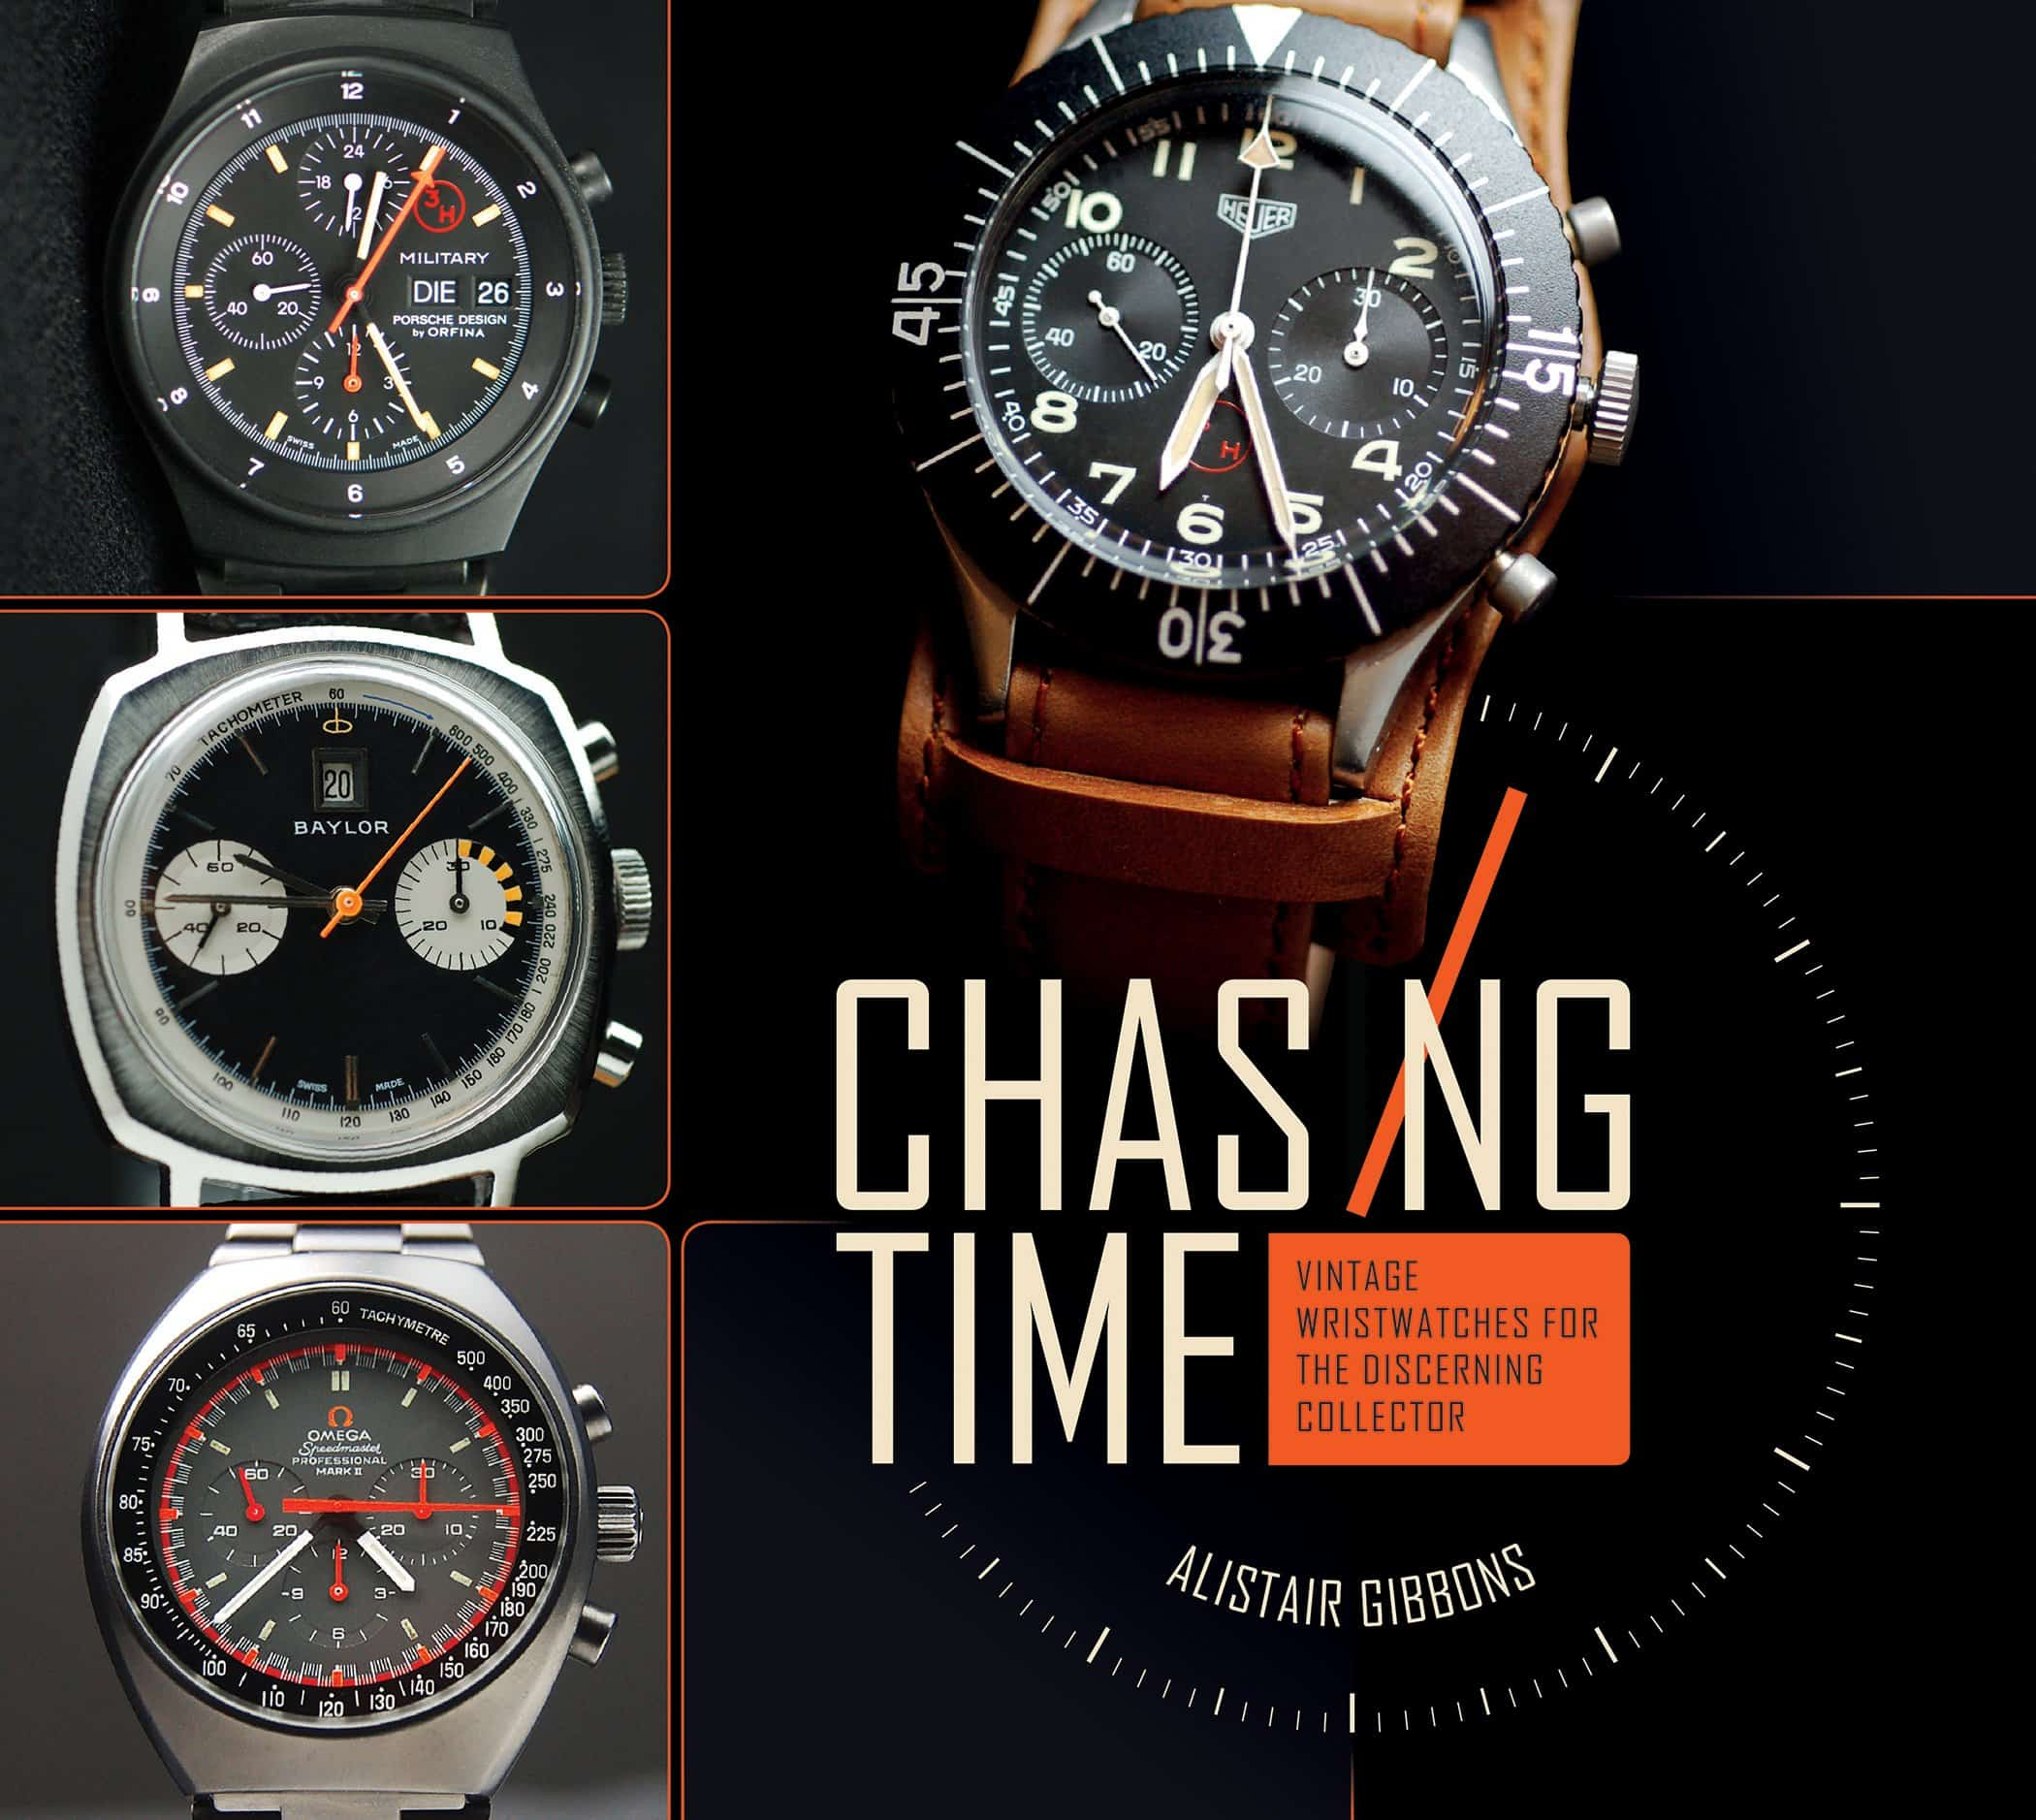 Watch Book - Chasing Time - Vintage Wristwatches for the Discerning Collector